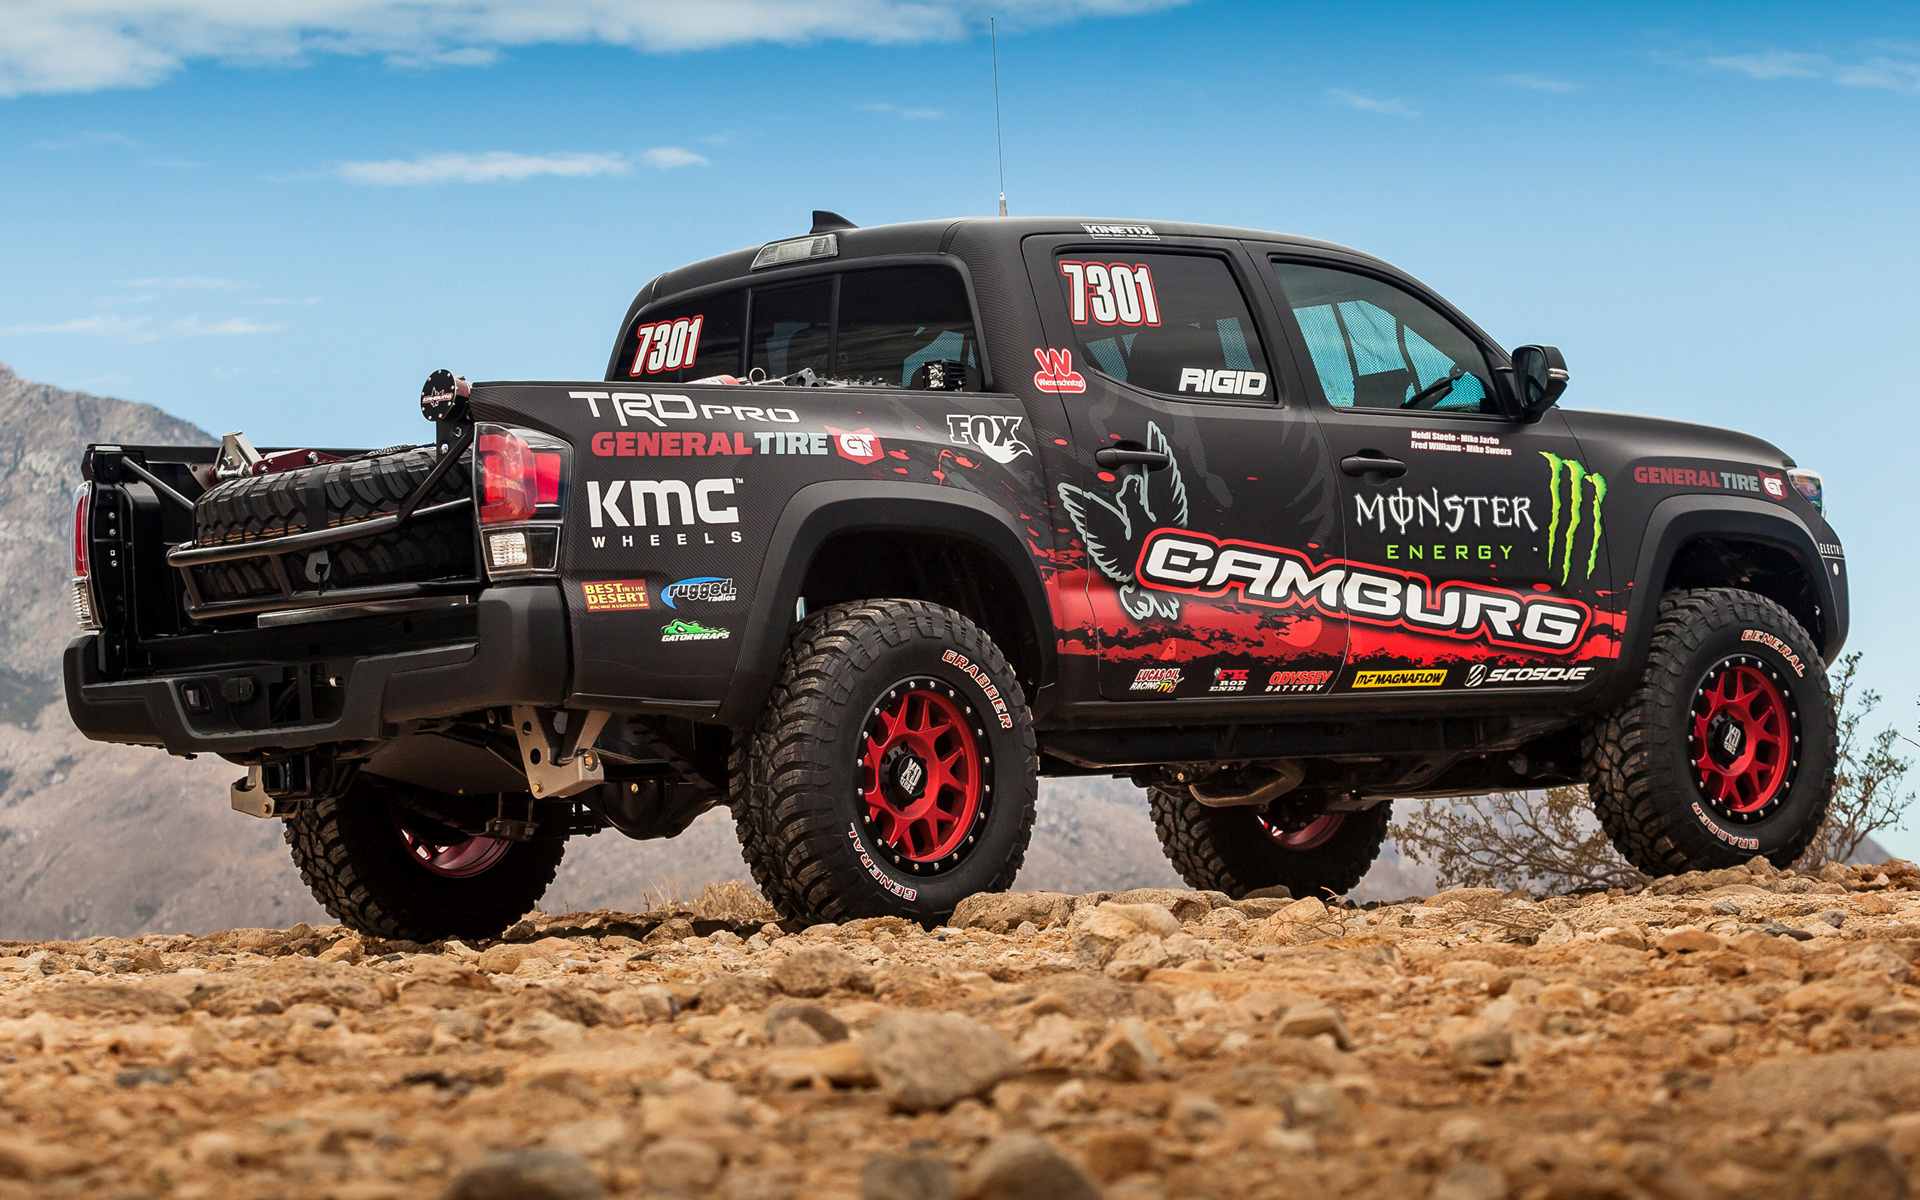 2016 Toyota Tacoma Access Cab >> 2016 Toyota Tacoma TRD Pro Race Truck - Wallpapers and HD ...